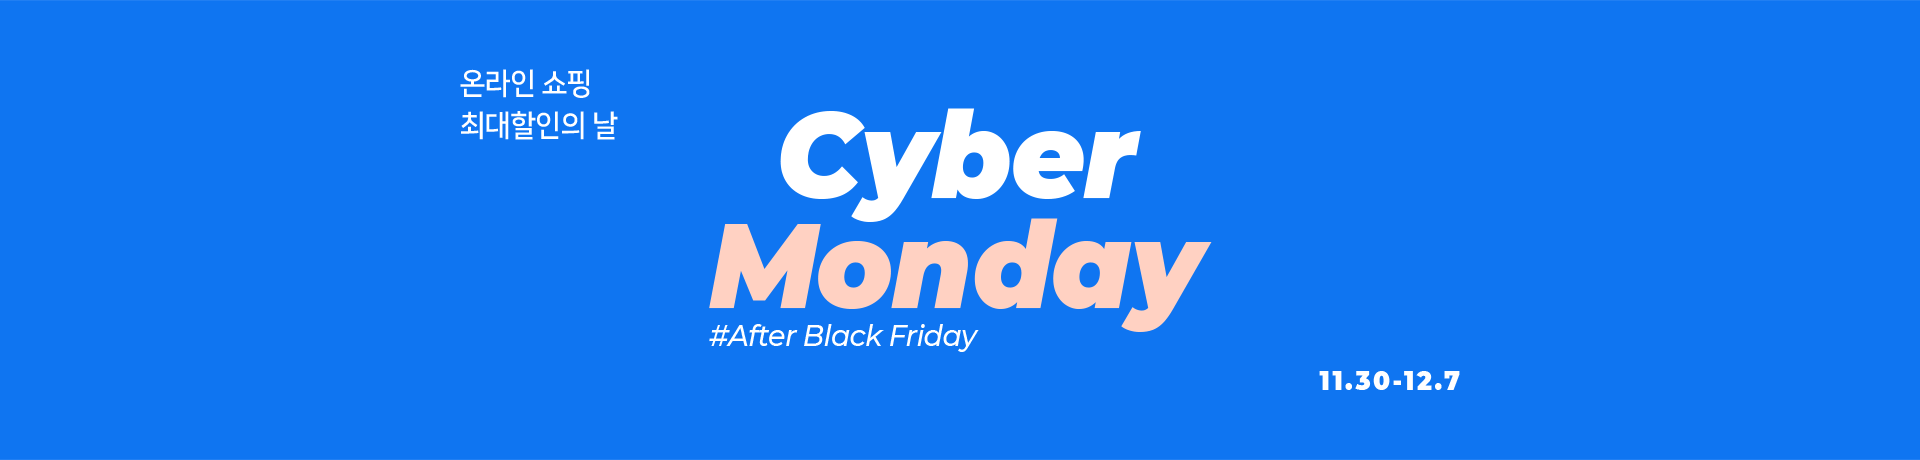 201130_sy_cybermonday_pc-_0f75f1